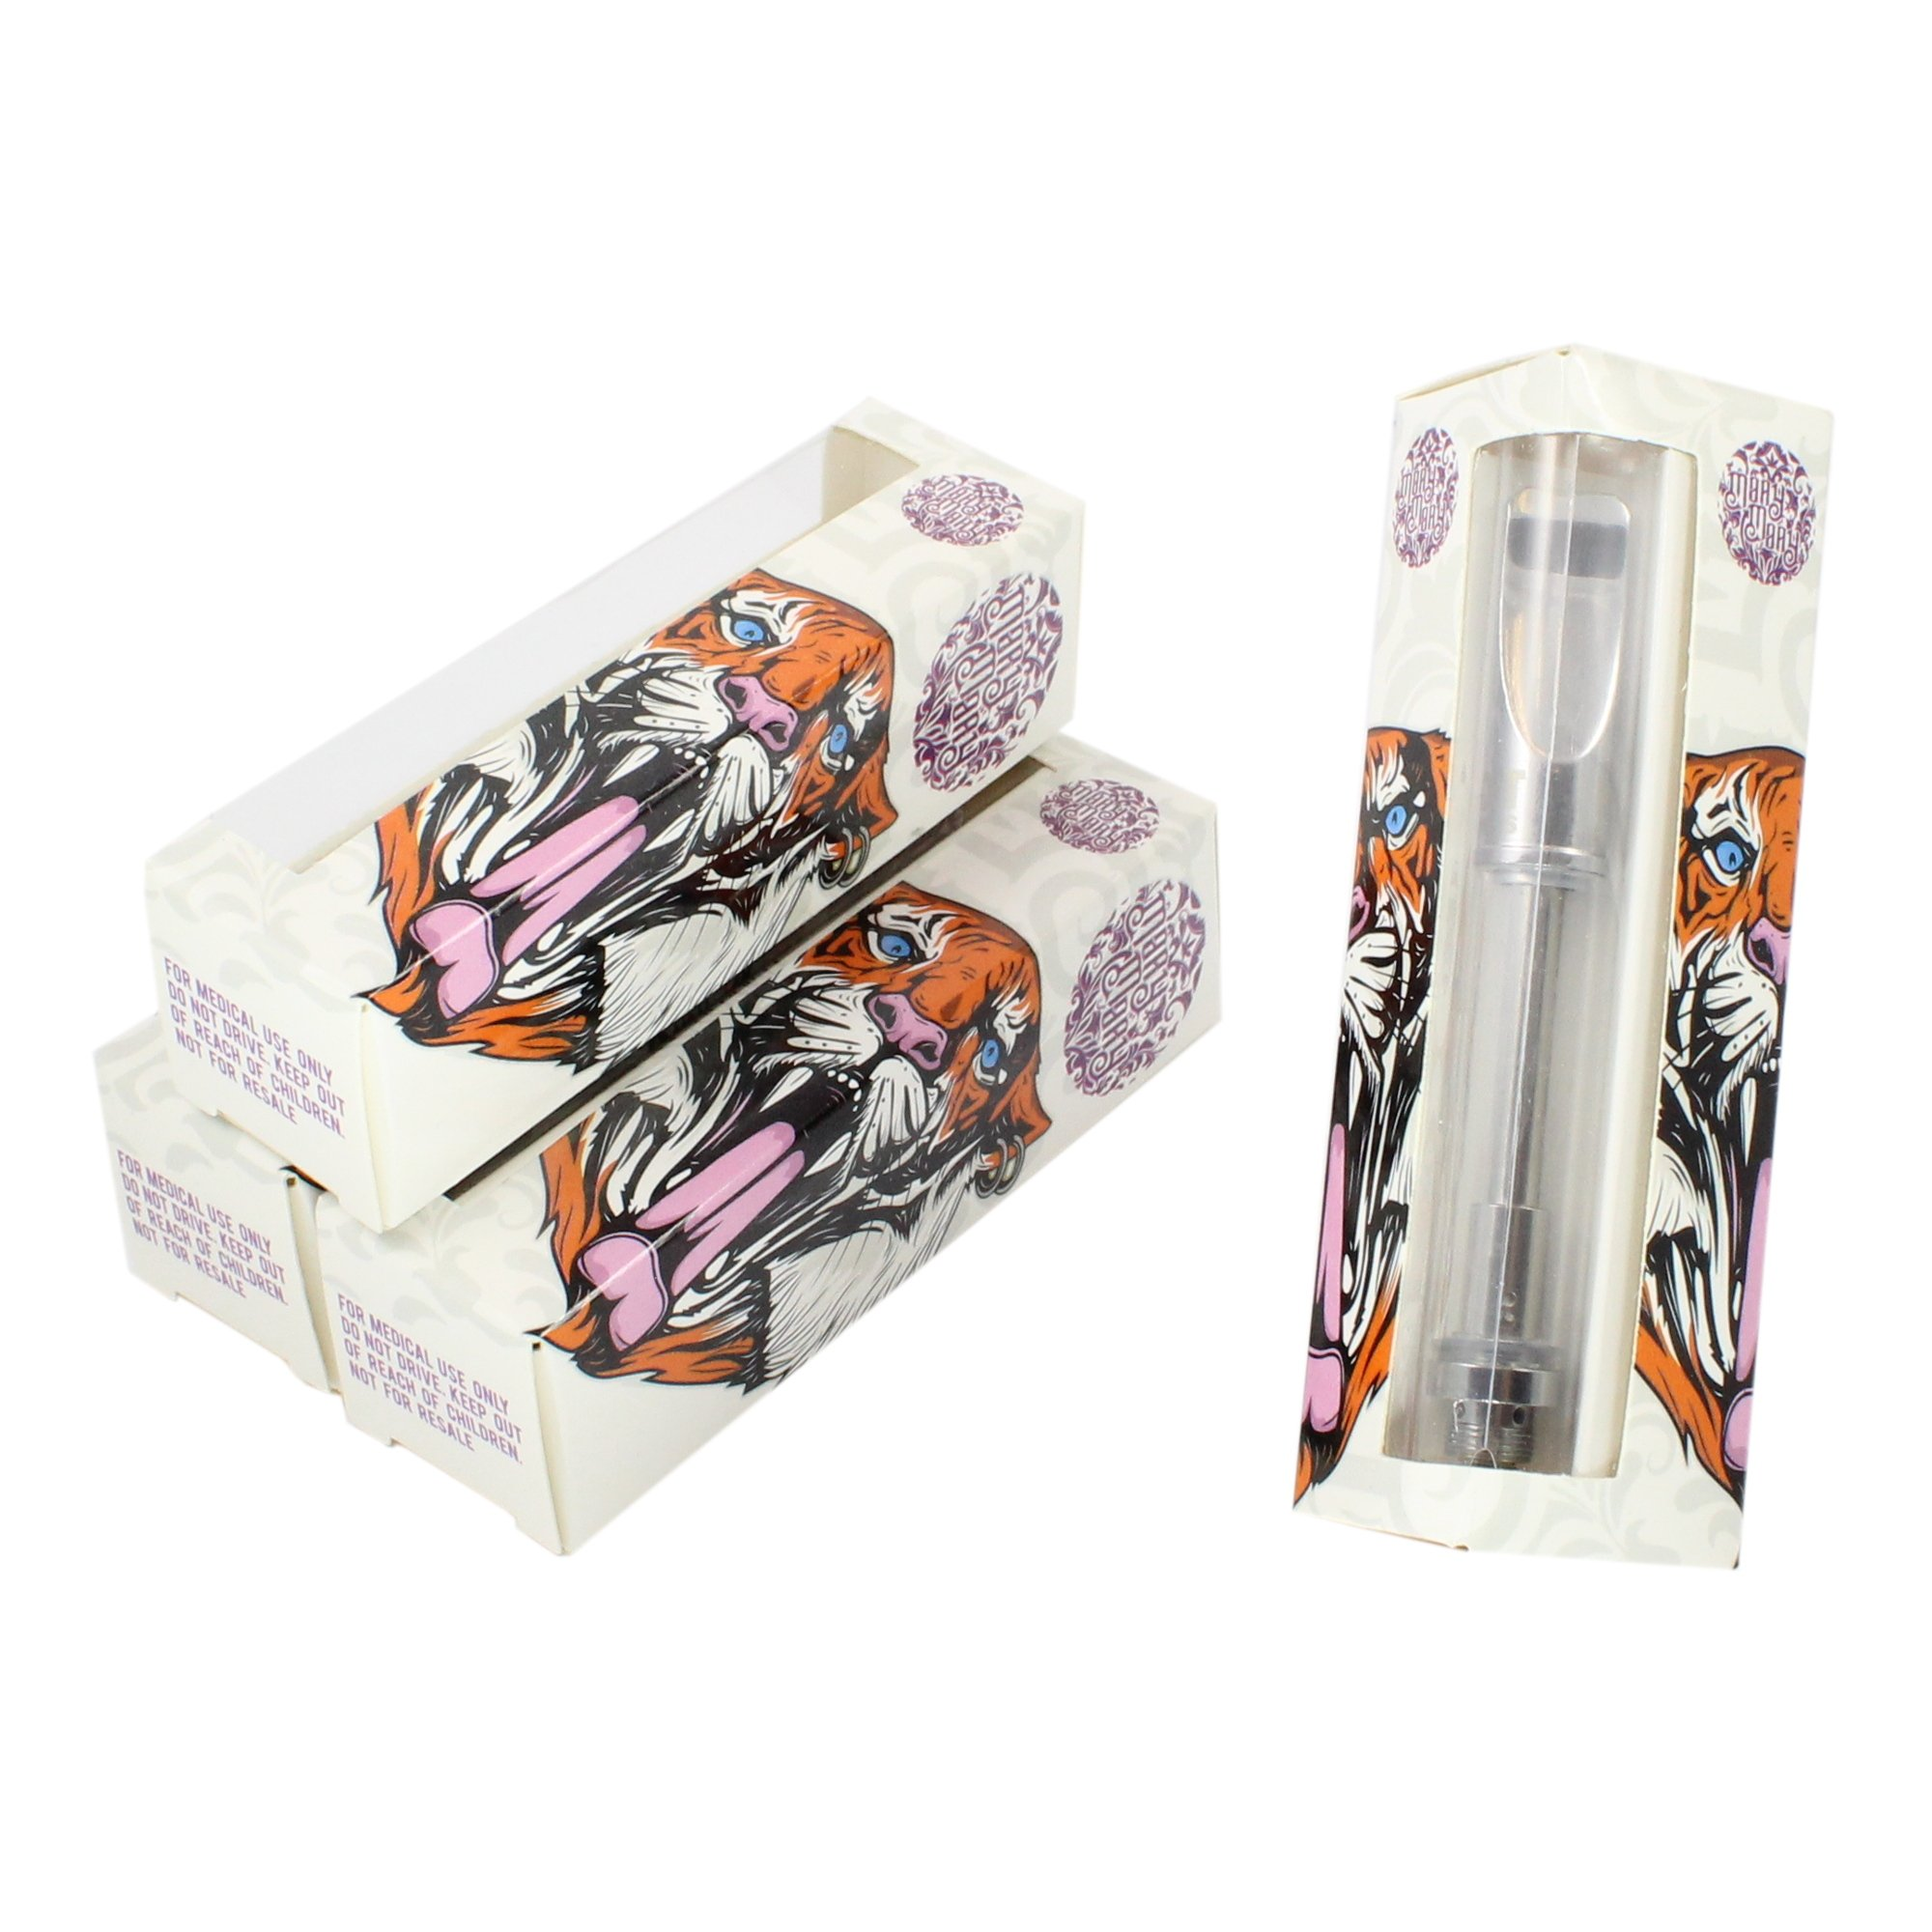 Mary Mary Tiger Empty Distillate Packaging Slim 1.0 & 0.5 ML Boxes by Shatter Labels VB-039 (25)